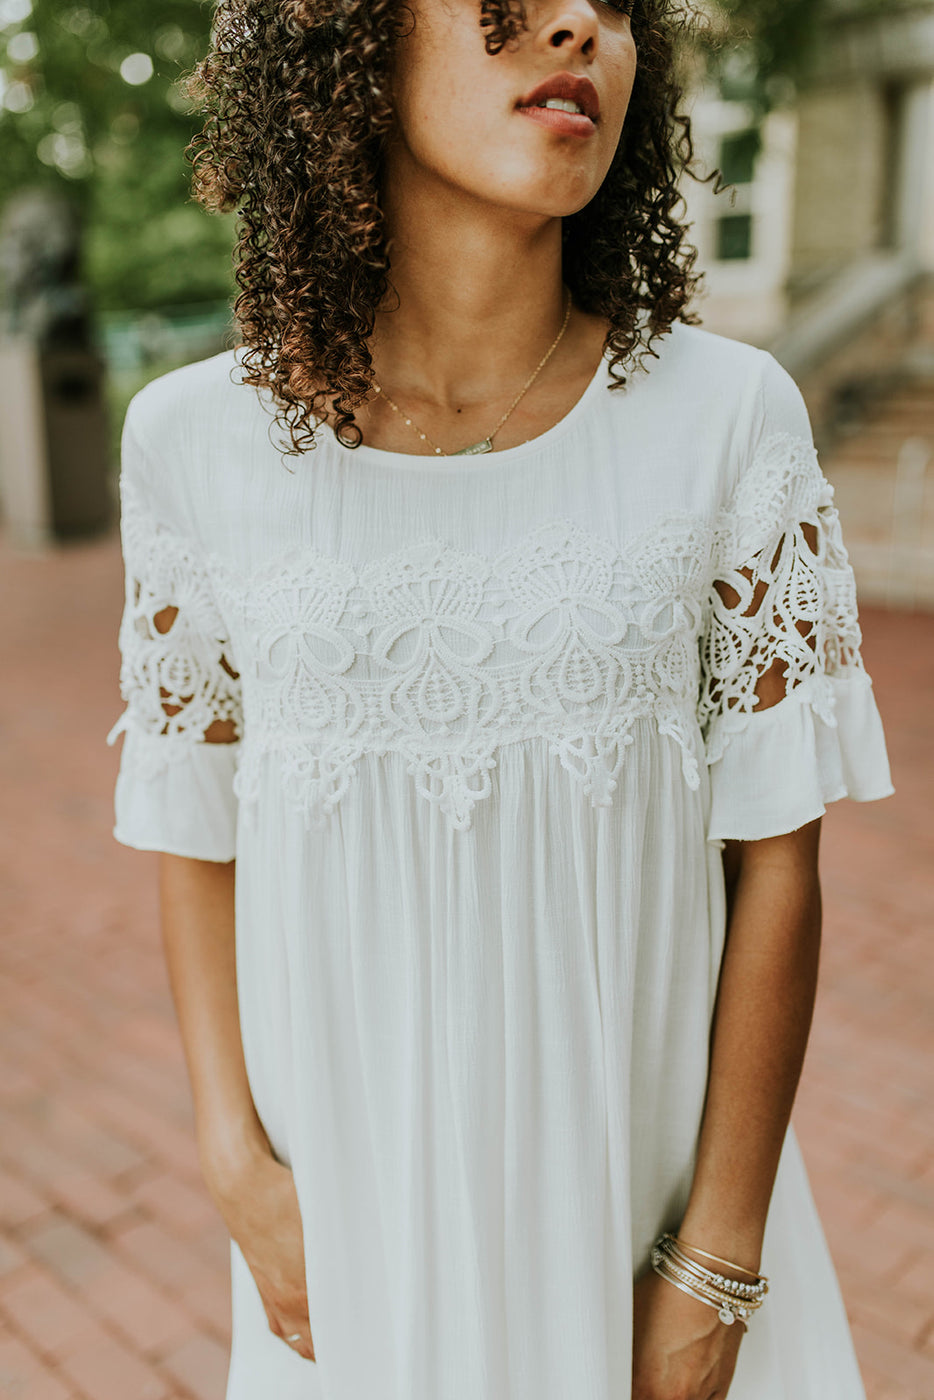 White Amazing lace dresses recommendations to wear for summer in 2019